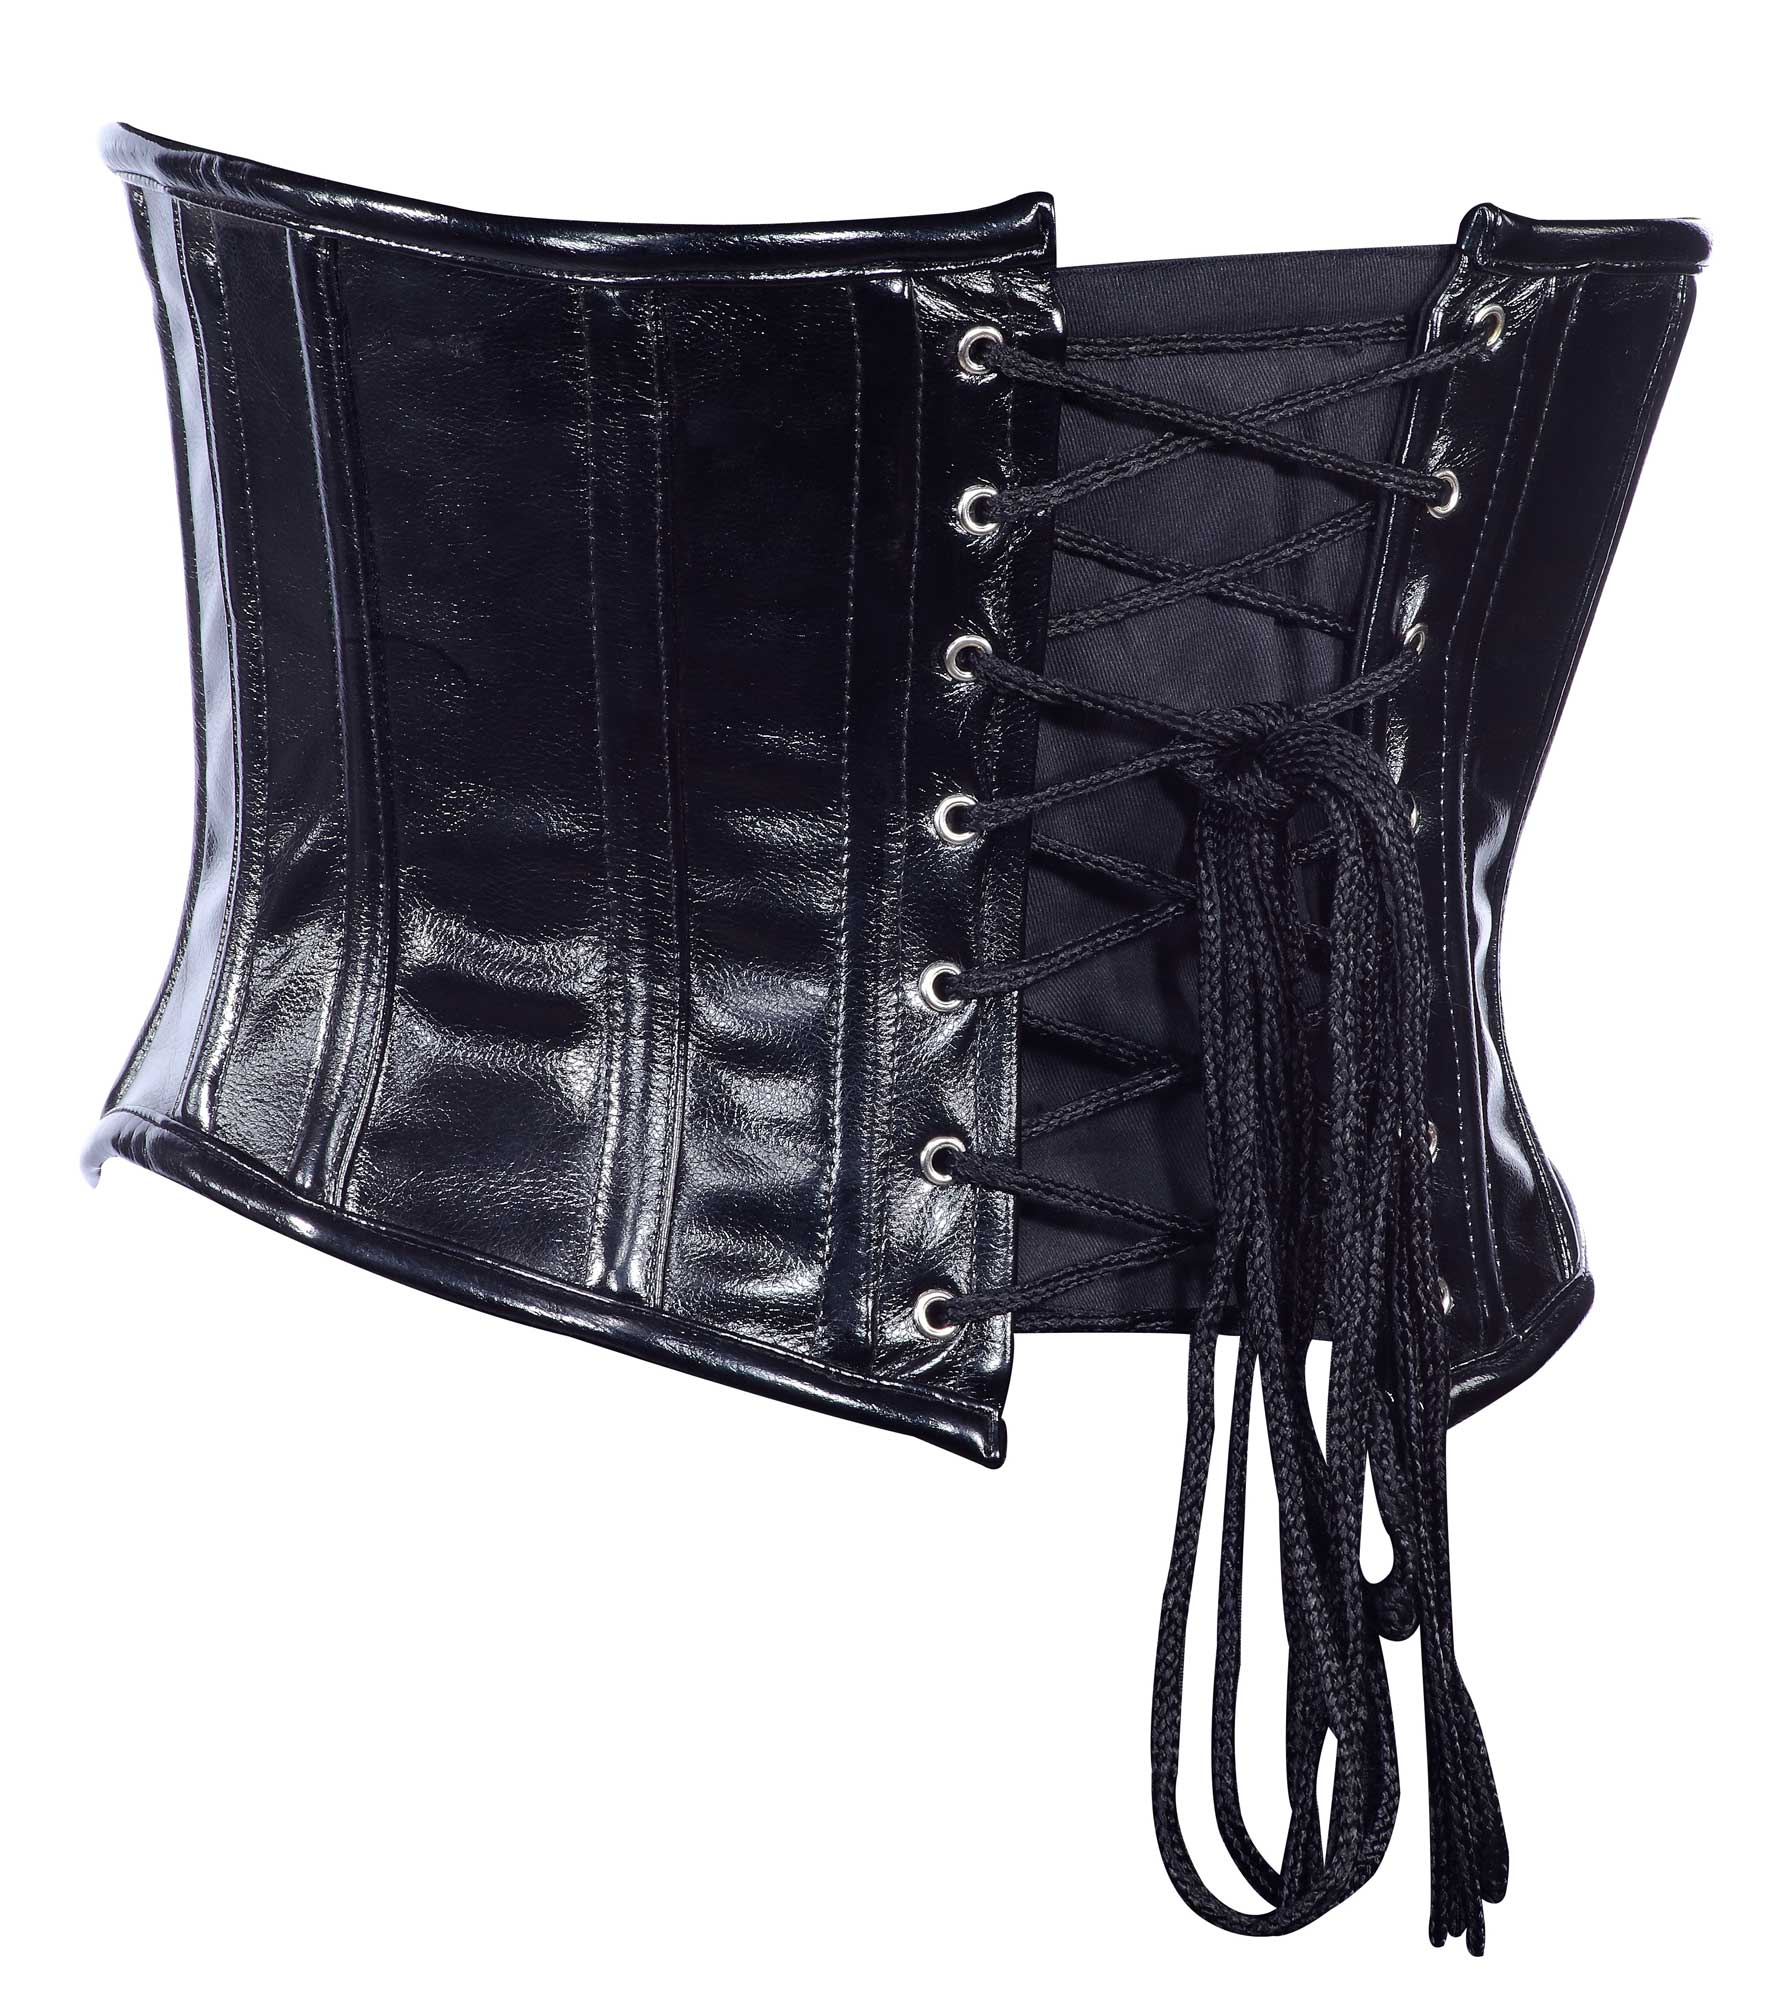 black_faux_leather_fabric_steel_boning_underbust_corset_waist_cincher_bustier_bustiers_and_corsets_3.jpg